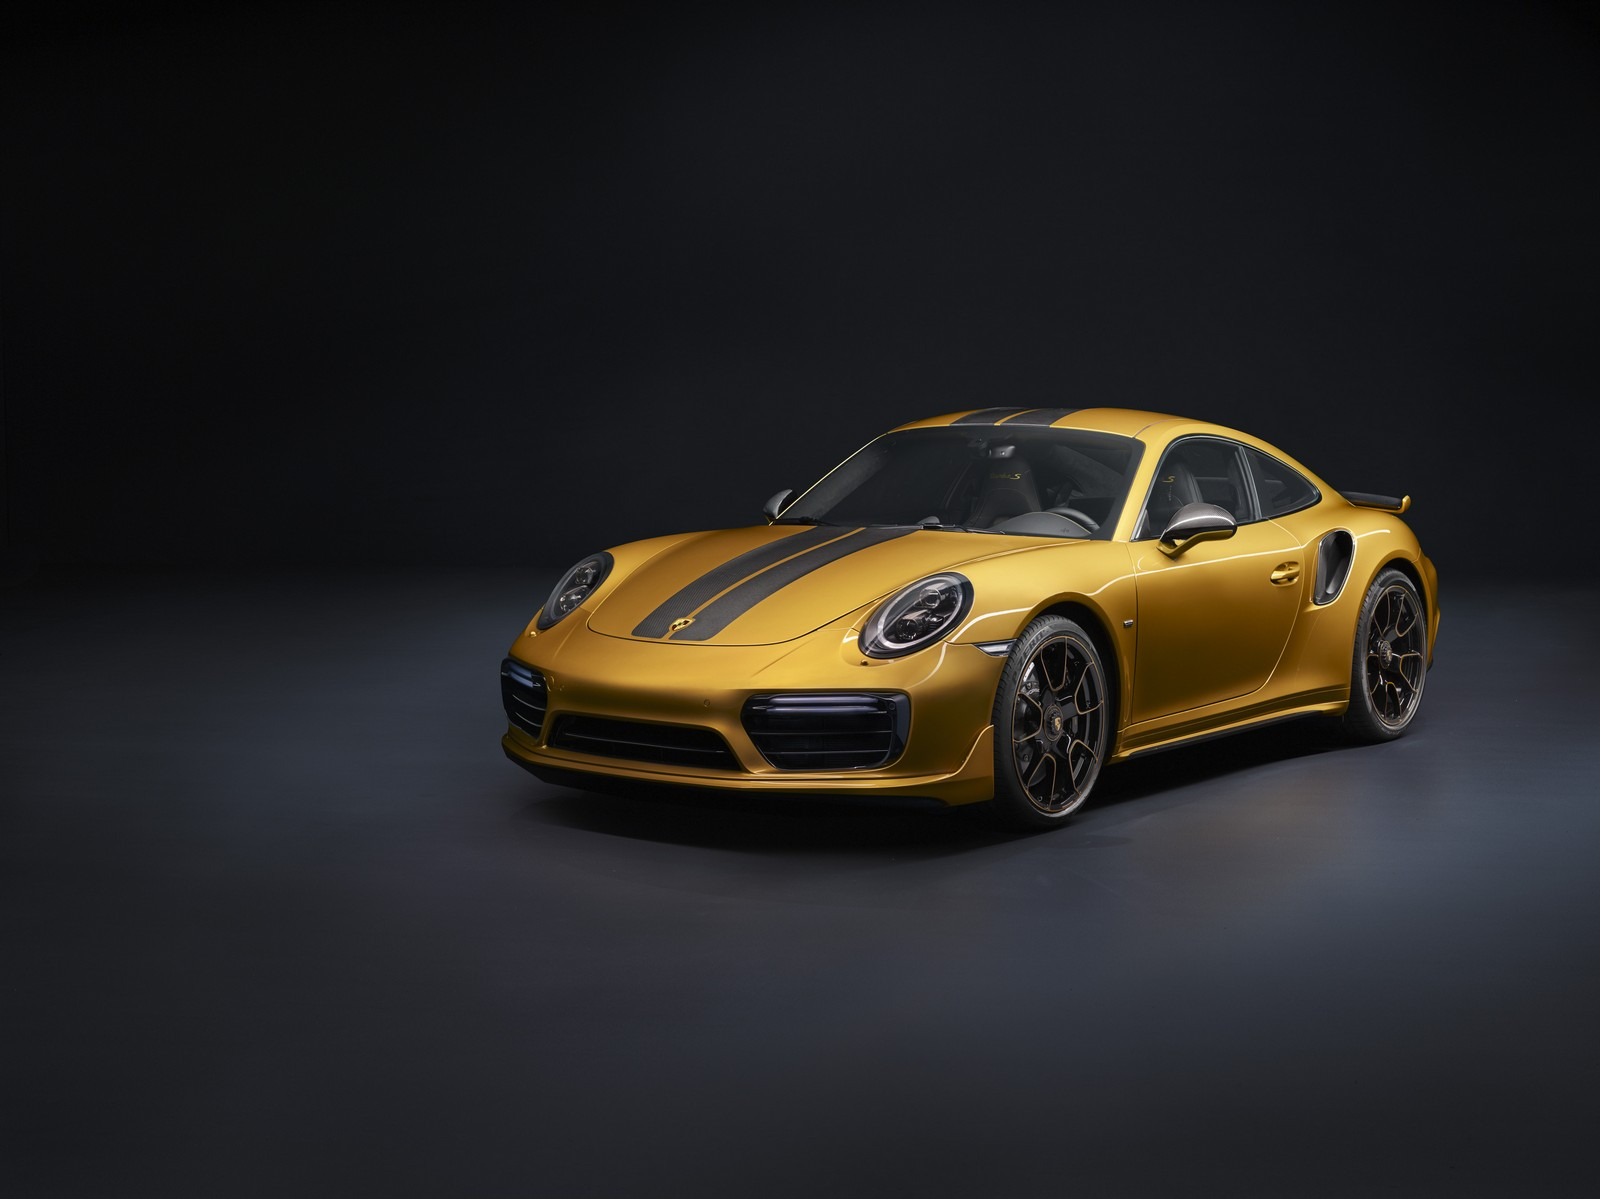 911 Turbo S Excluxive - 01